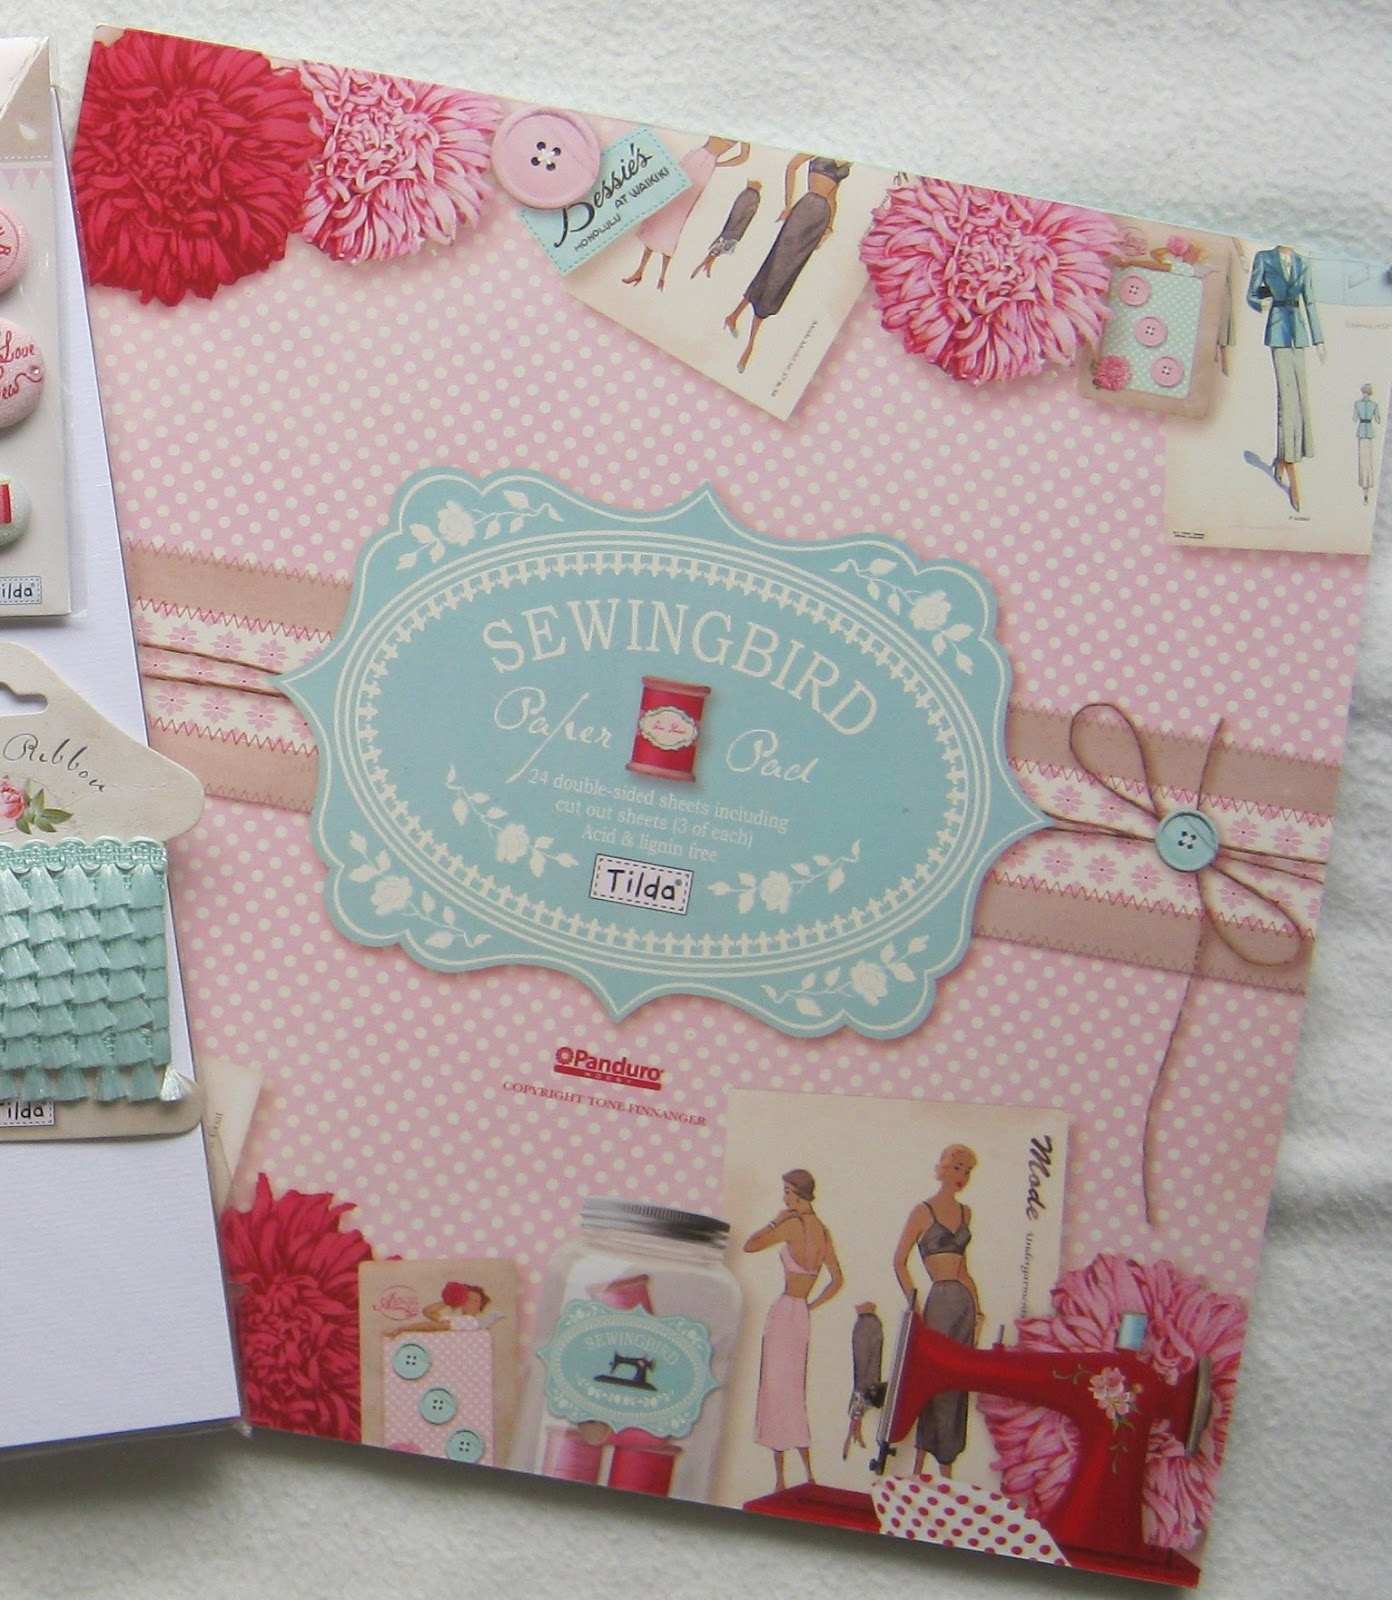 sewing paper Get creative with nancy's notions we believe everyone is creative whether you just like to dabble or need to feed your passion, find the right supplies, tools, fabric, and patterns for all of your sewing, quilting, embroidery, and make-it-yourself projects.